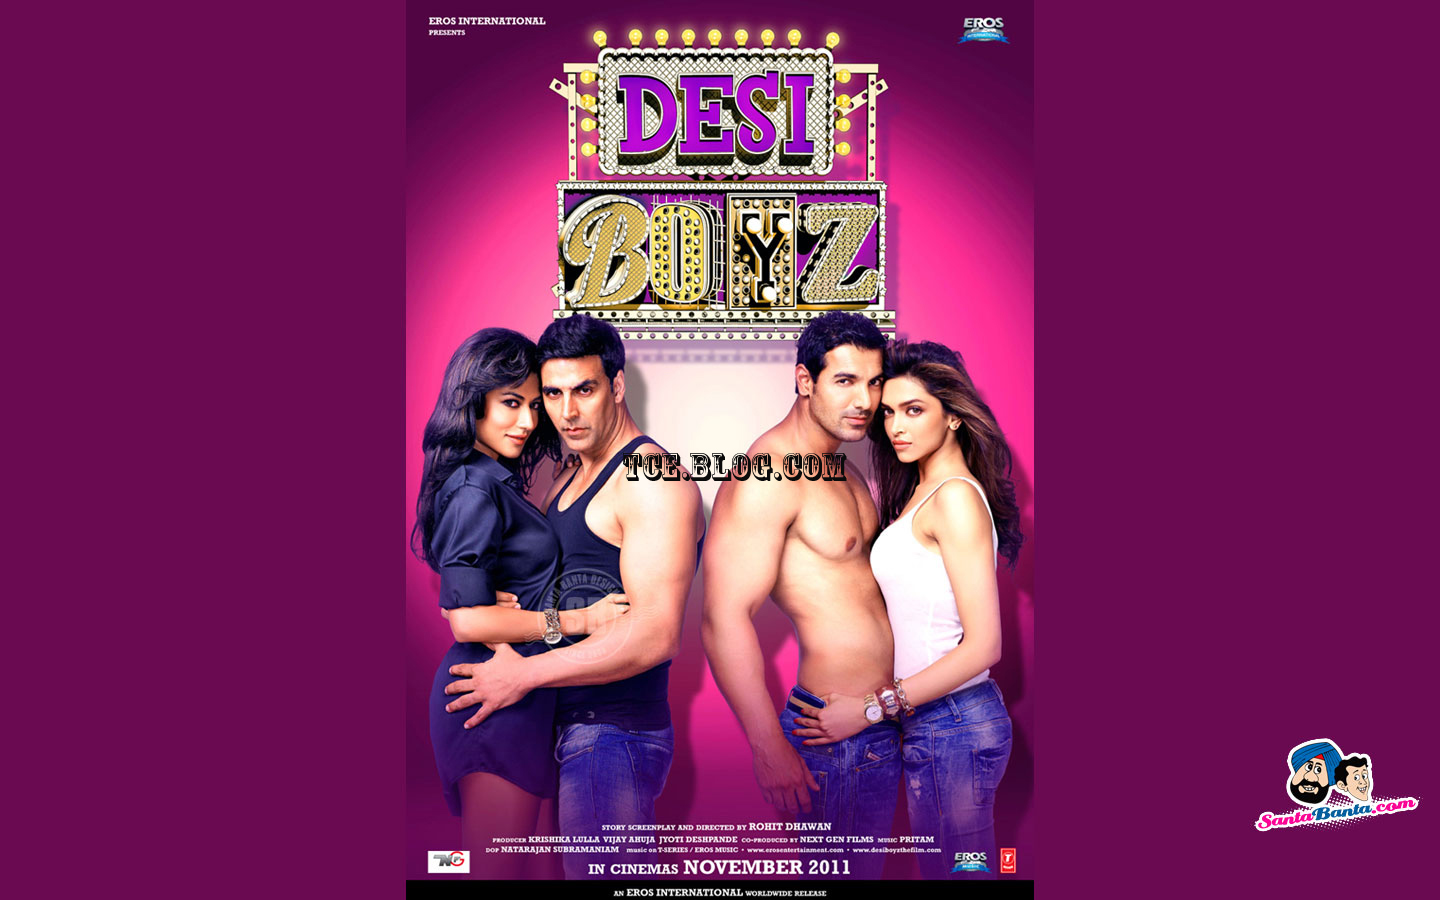 download wallpaper desi boyz - photo #8